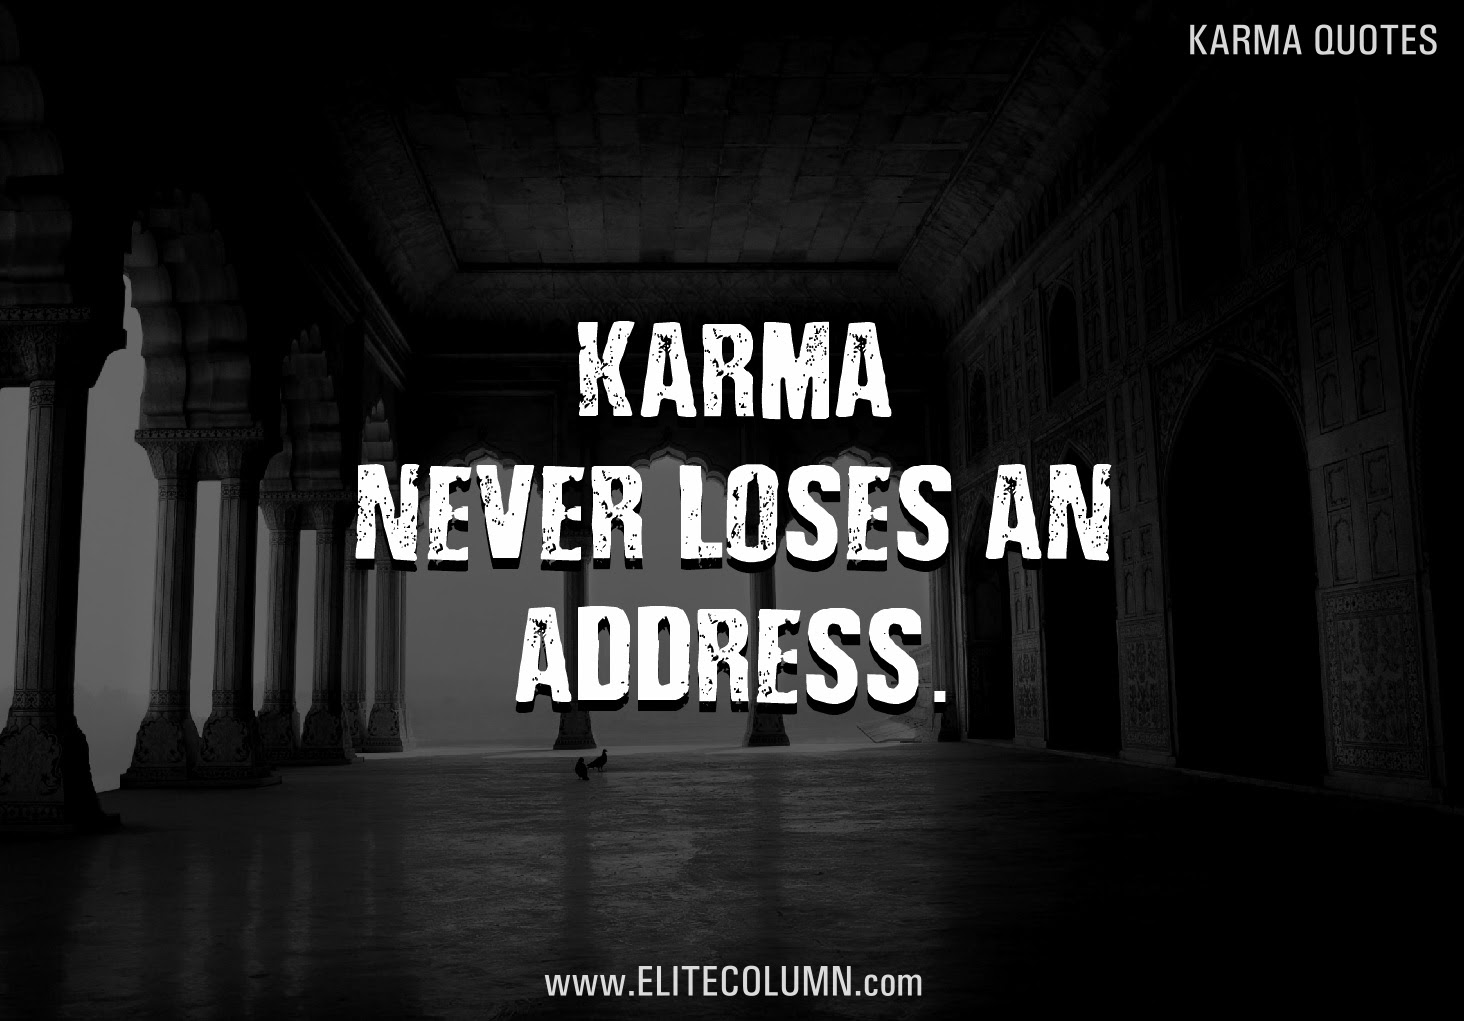 12 Karma Quotes So Relevant To 21st Century Life Elitecolumn